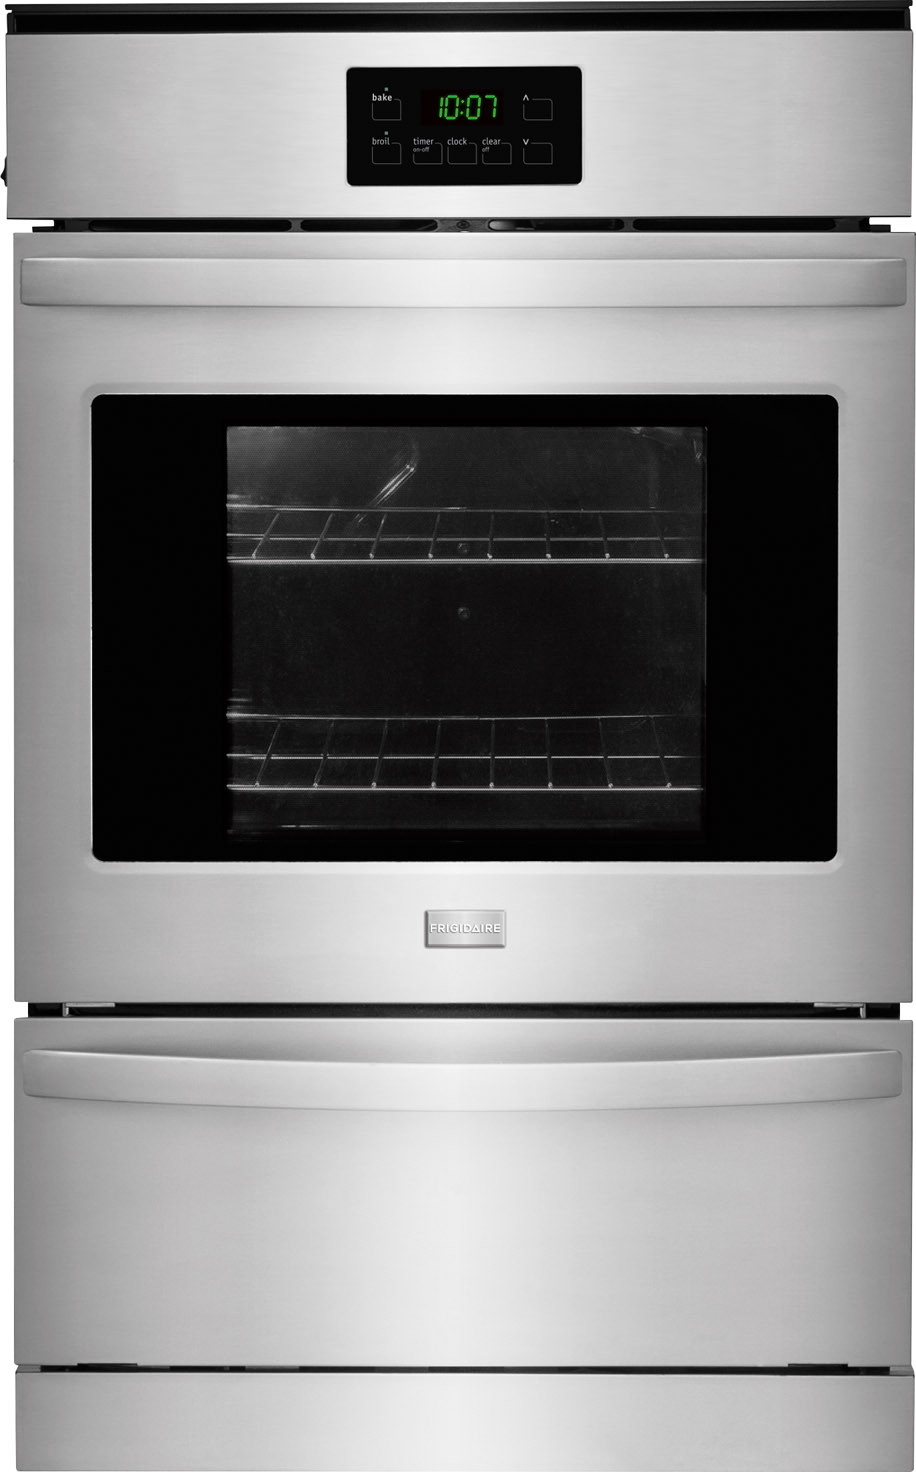 Frigidaire Ffgw2425qs 24 Inch Single Gas Wall Oven With 3 Cu Ft Capacity Ready Select Controls Dual Radiant Baking And Roasting